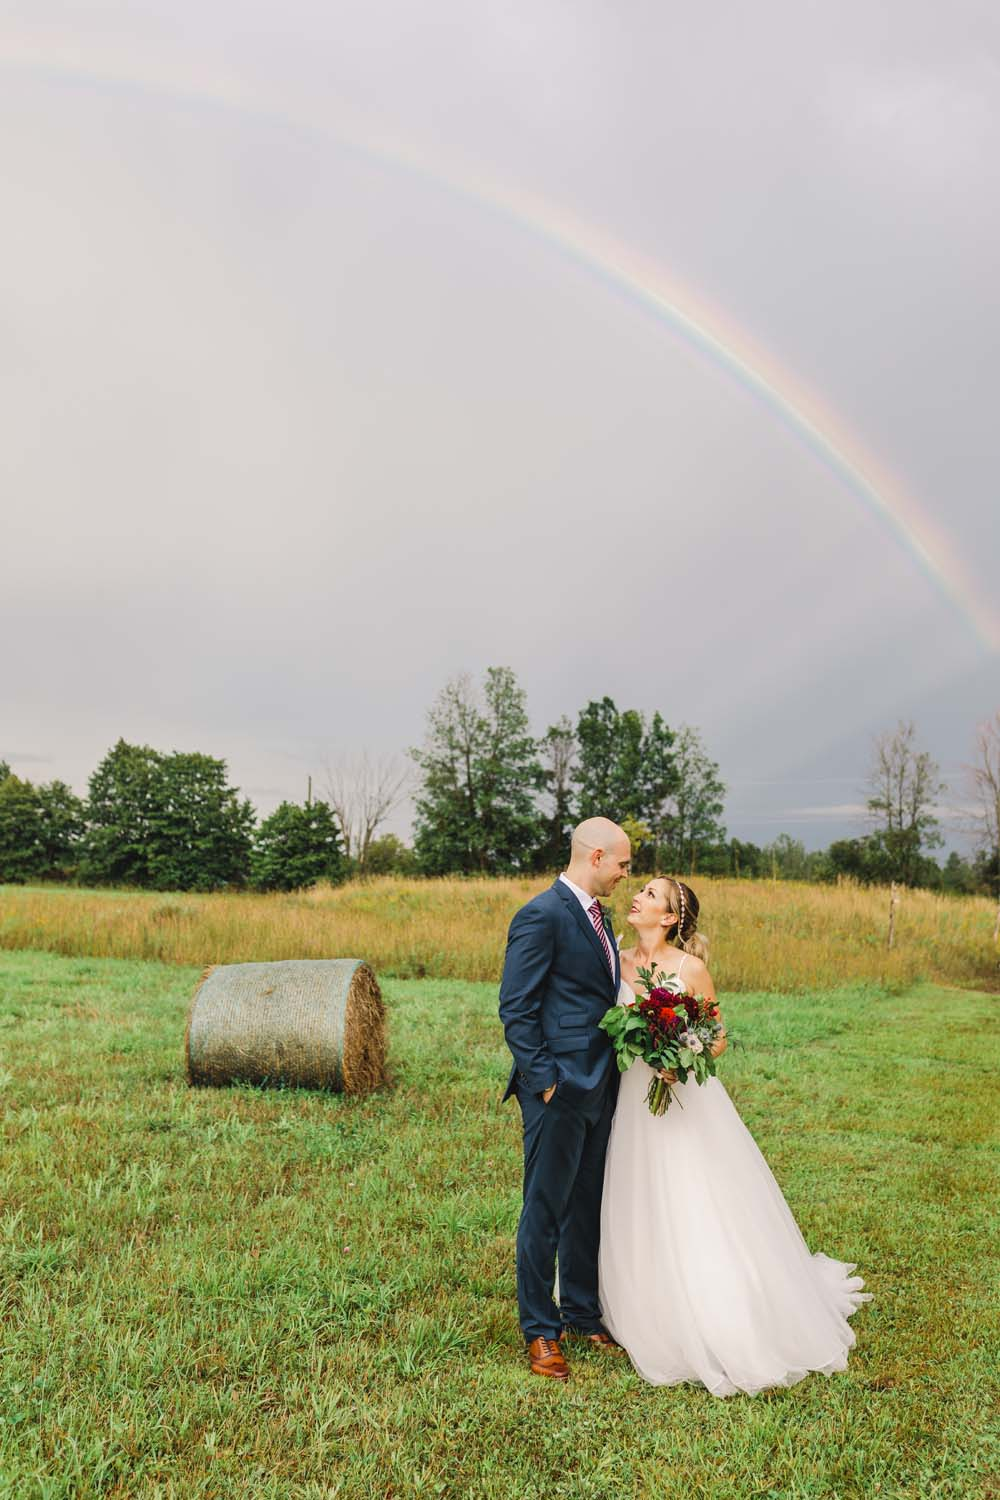 An Enchanting Vineyard Wedding in Ottawa - Bride and groom